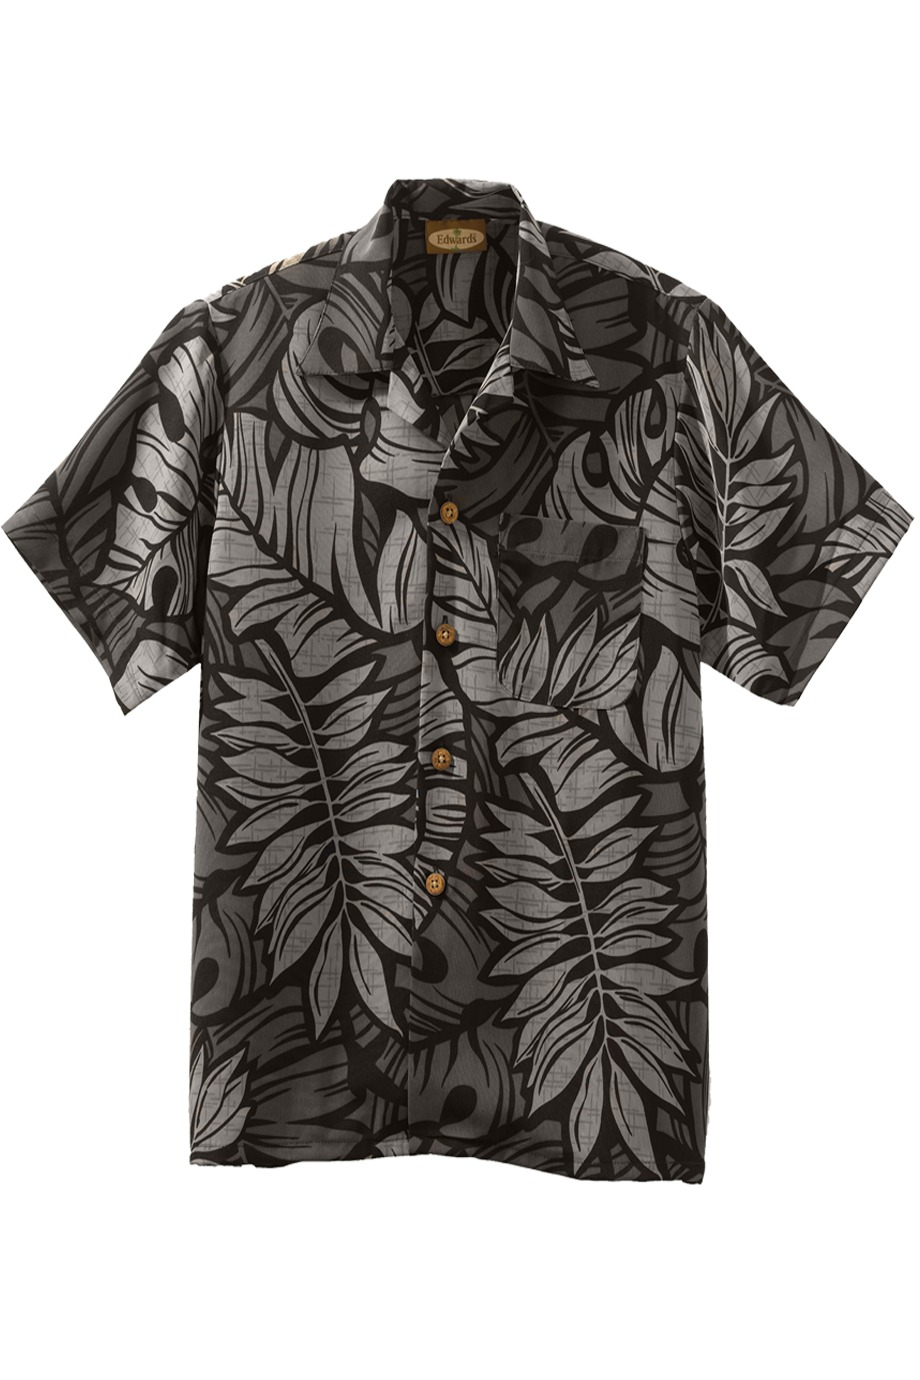 Edwards Garment 1018 - South Seas Leaf Print Camp Shirt